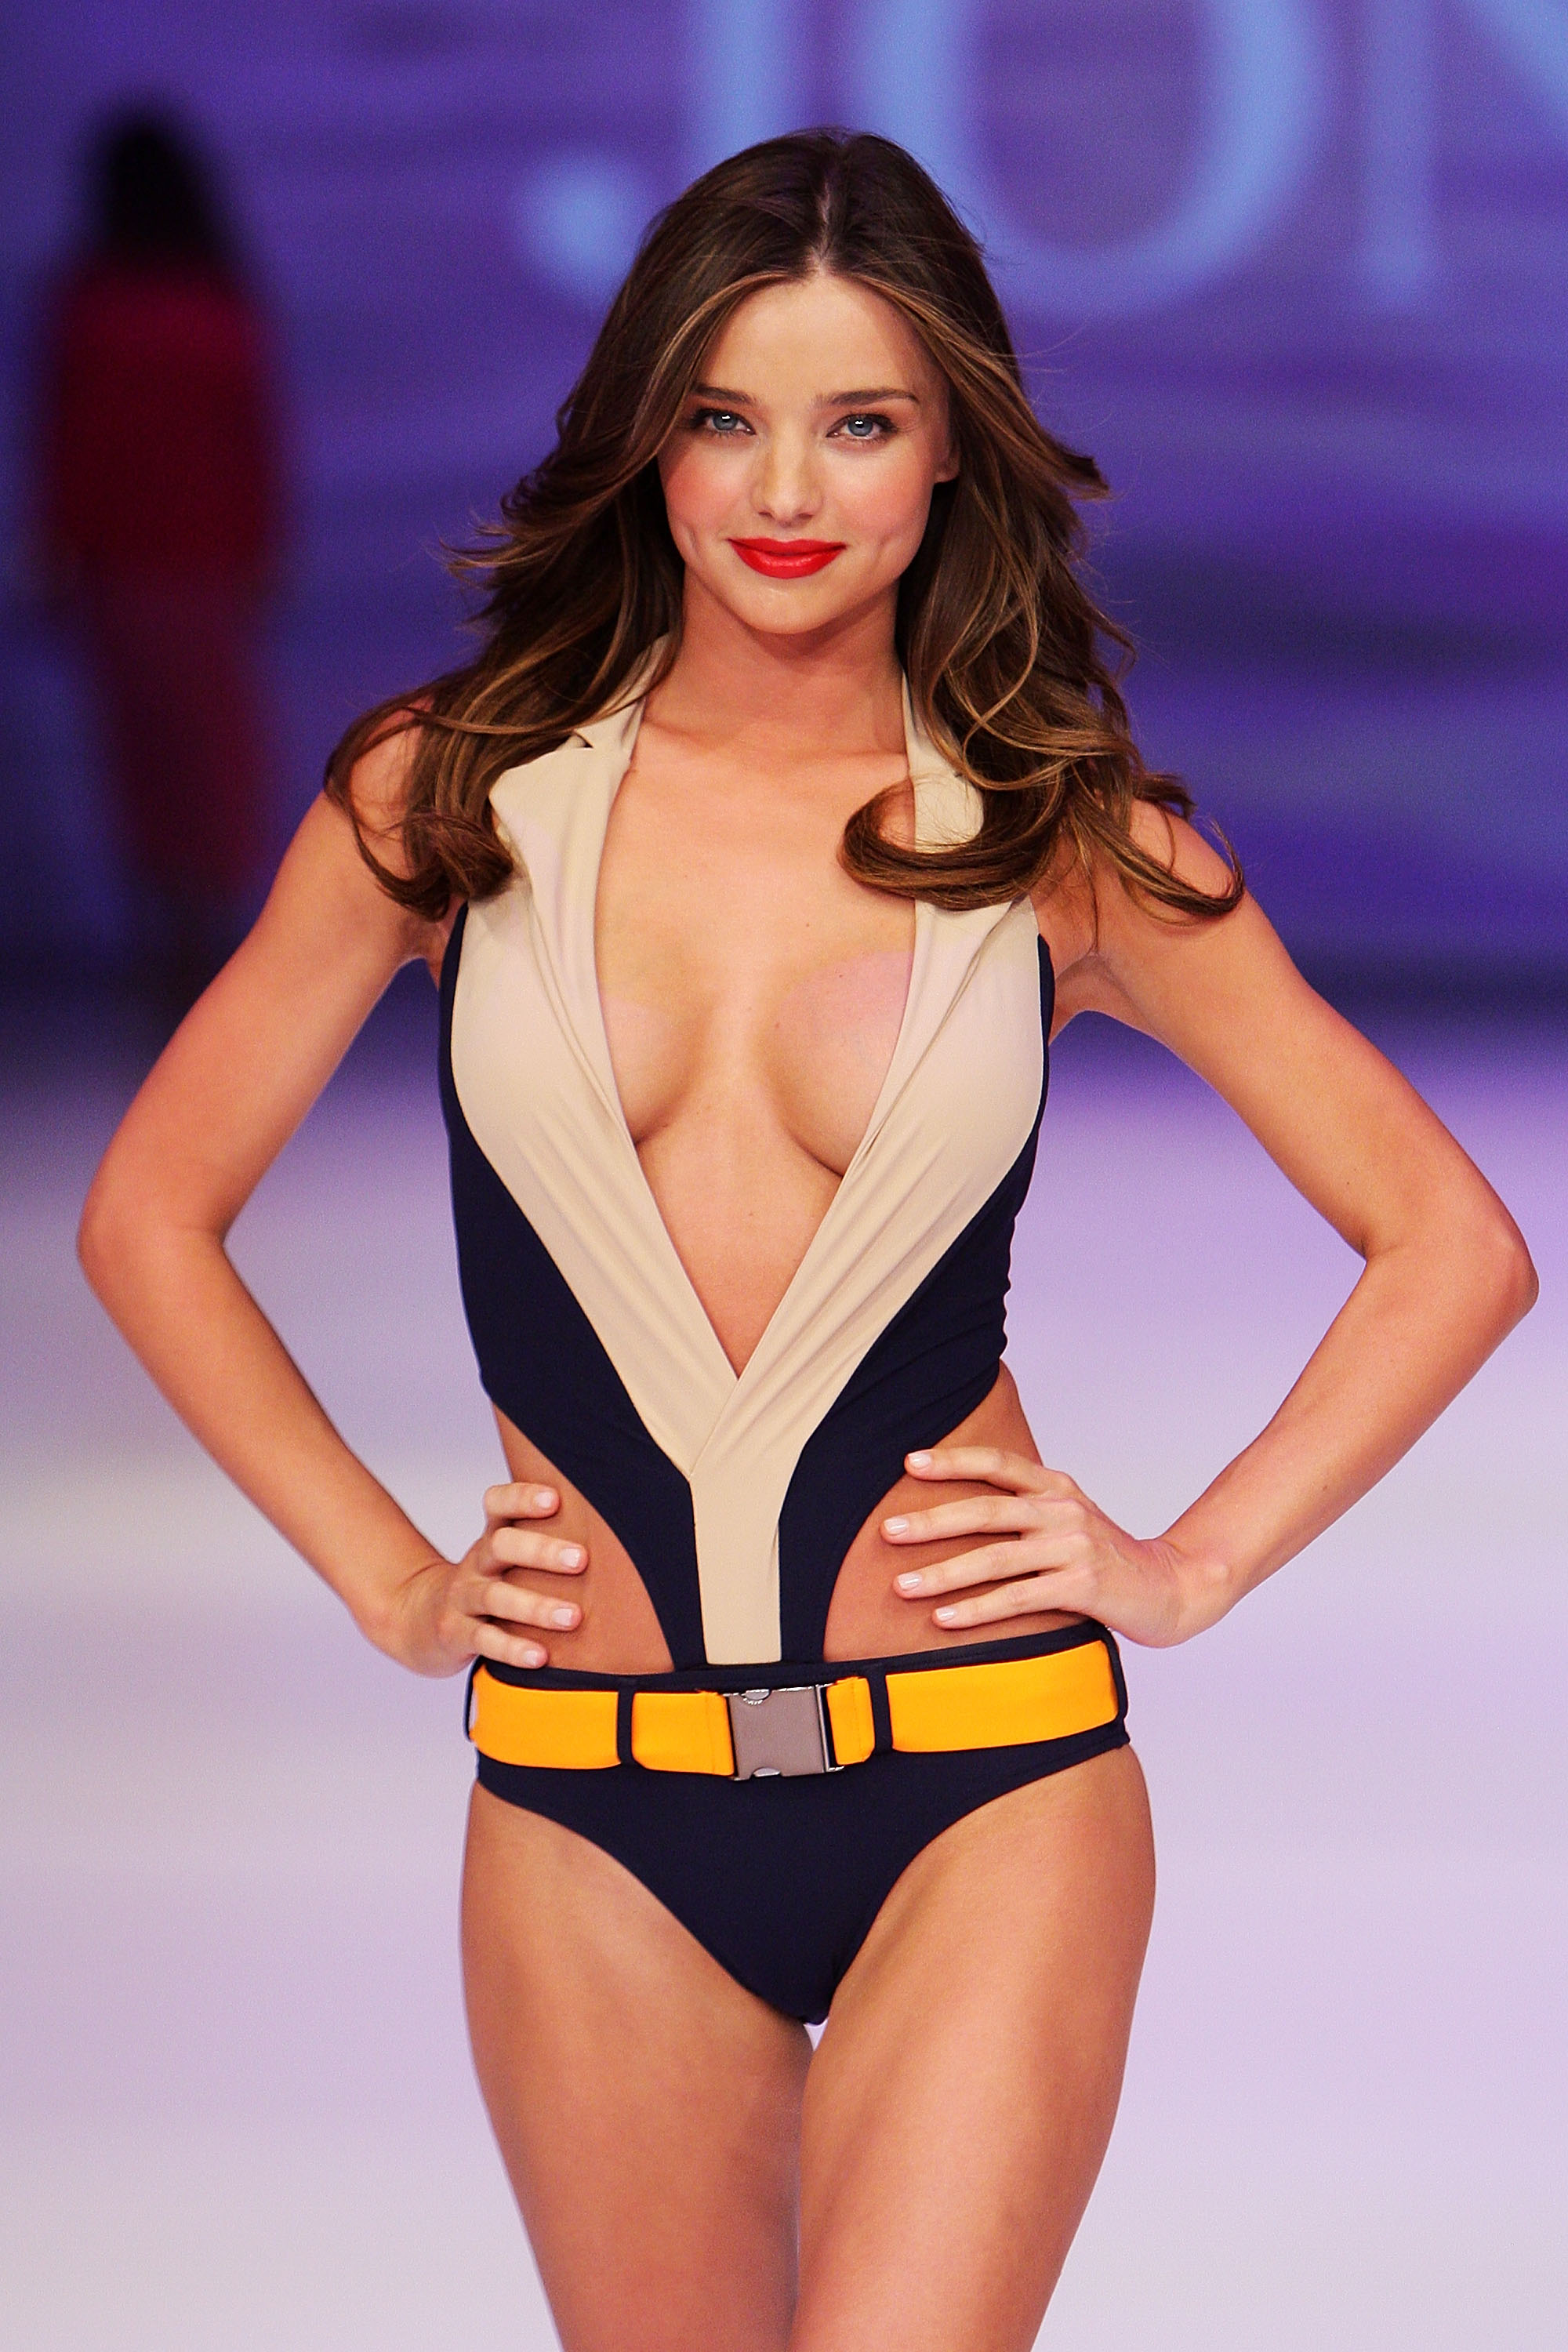 Miranda Kerr on the runway in a swimsuit.